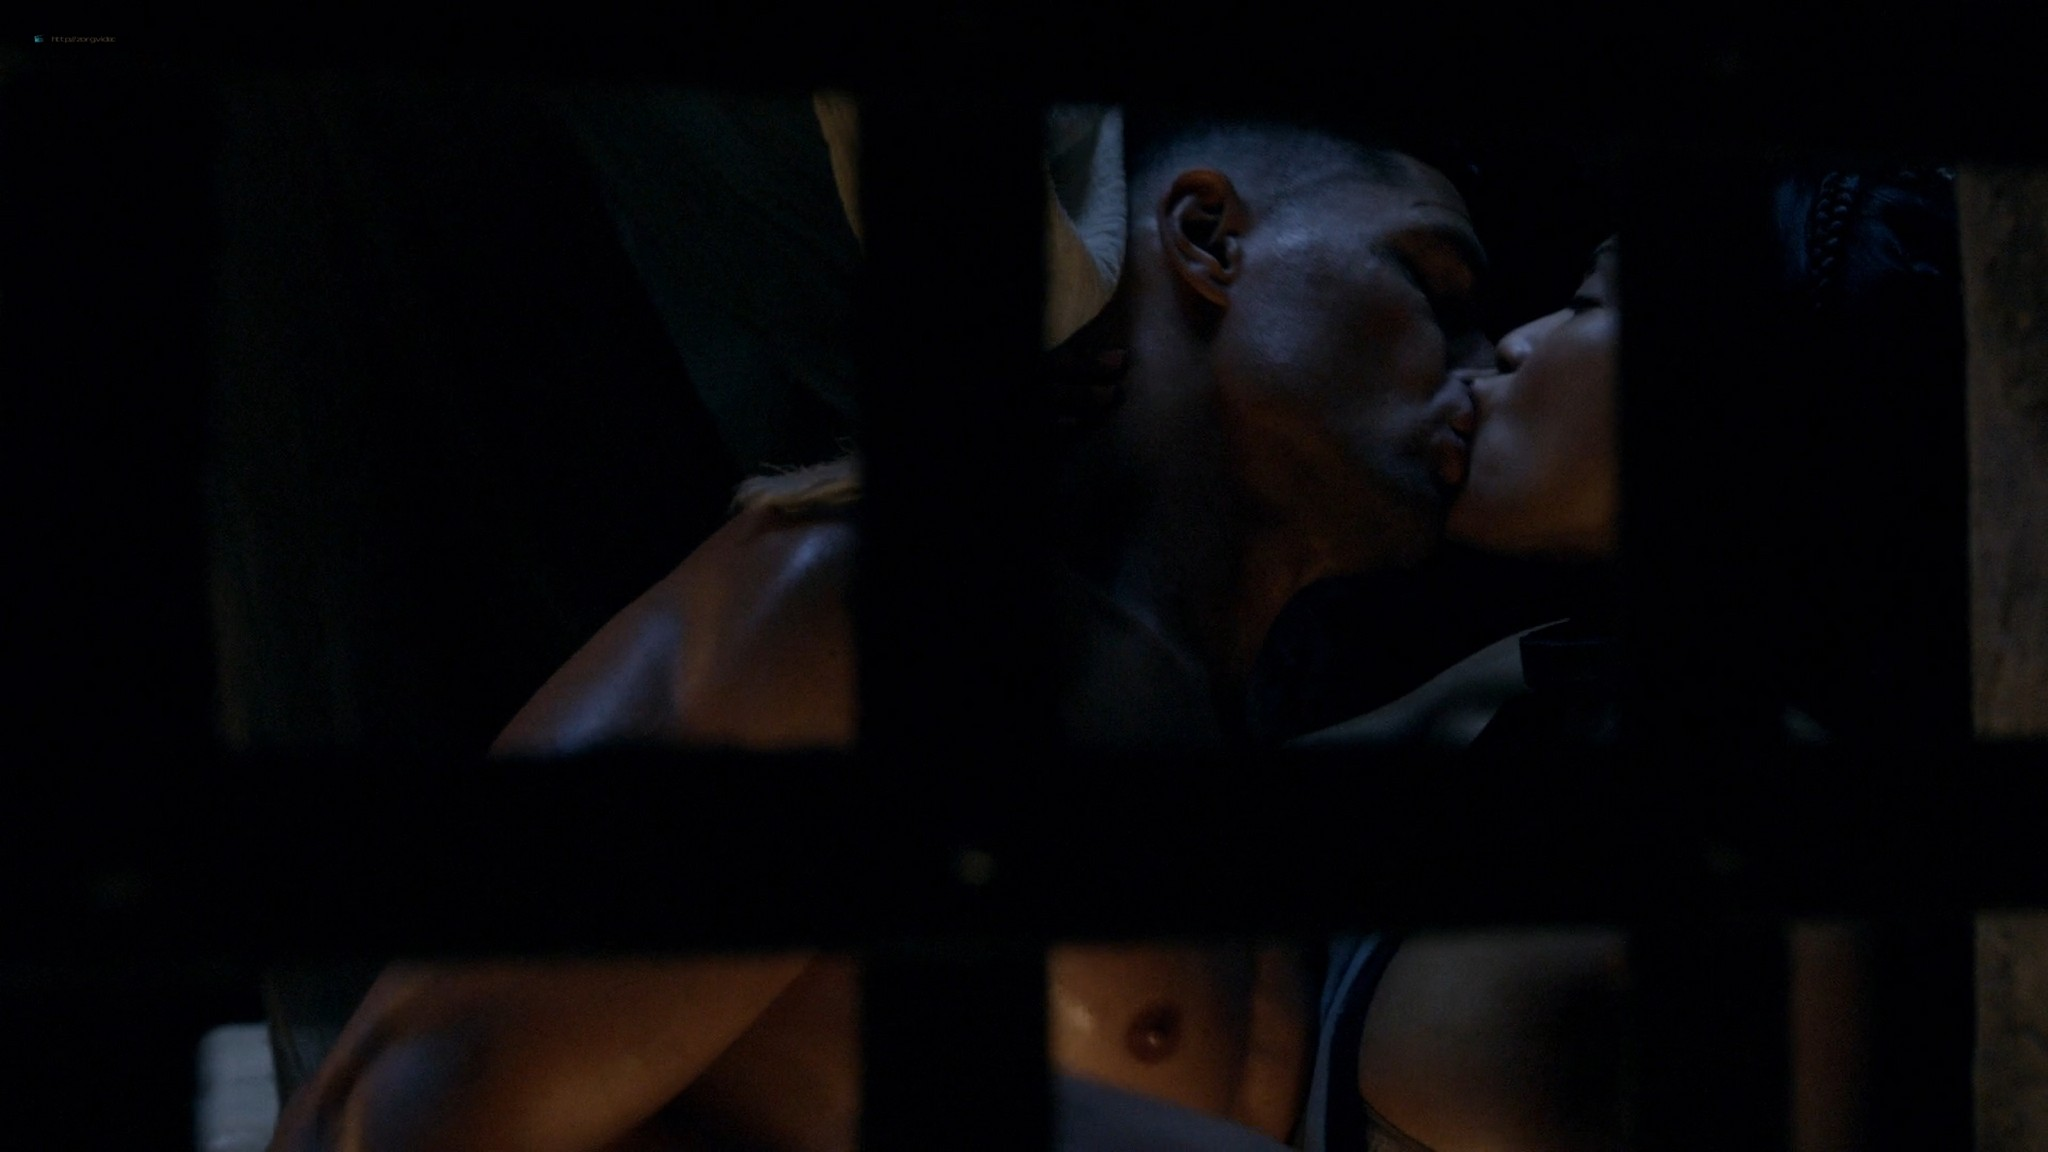 Lucy Lawless hot sex oral Lesley-Ann Brandt and others sexy - Spartacus - The Thing in the Pit (2010) s1e4-5 HD 1080p (4)